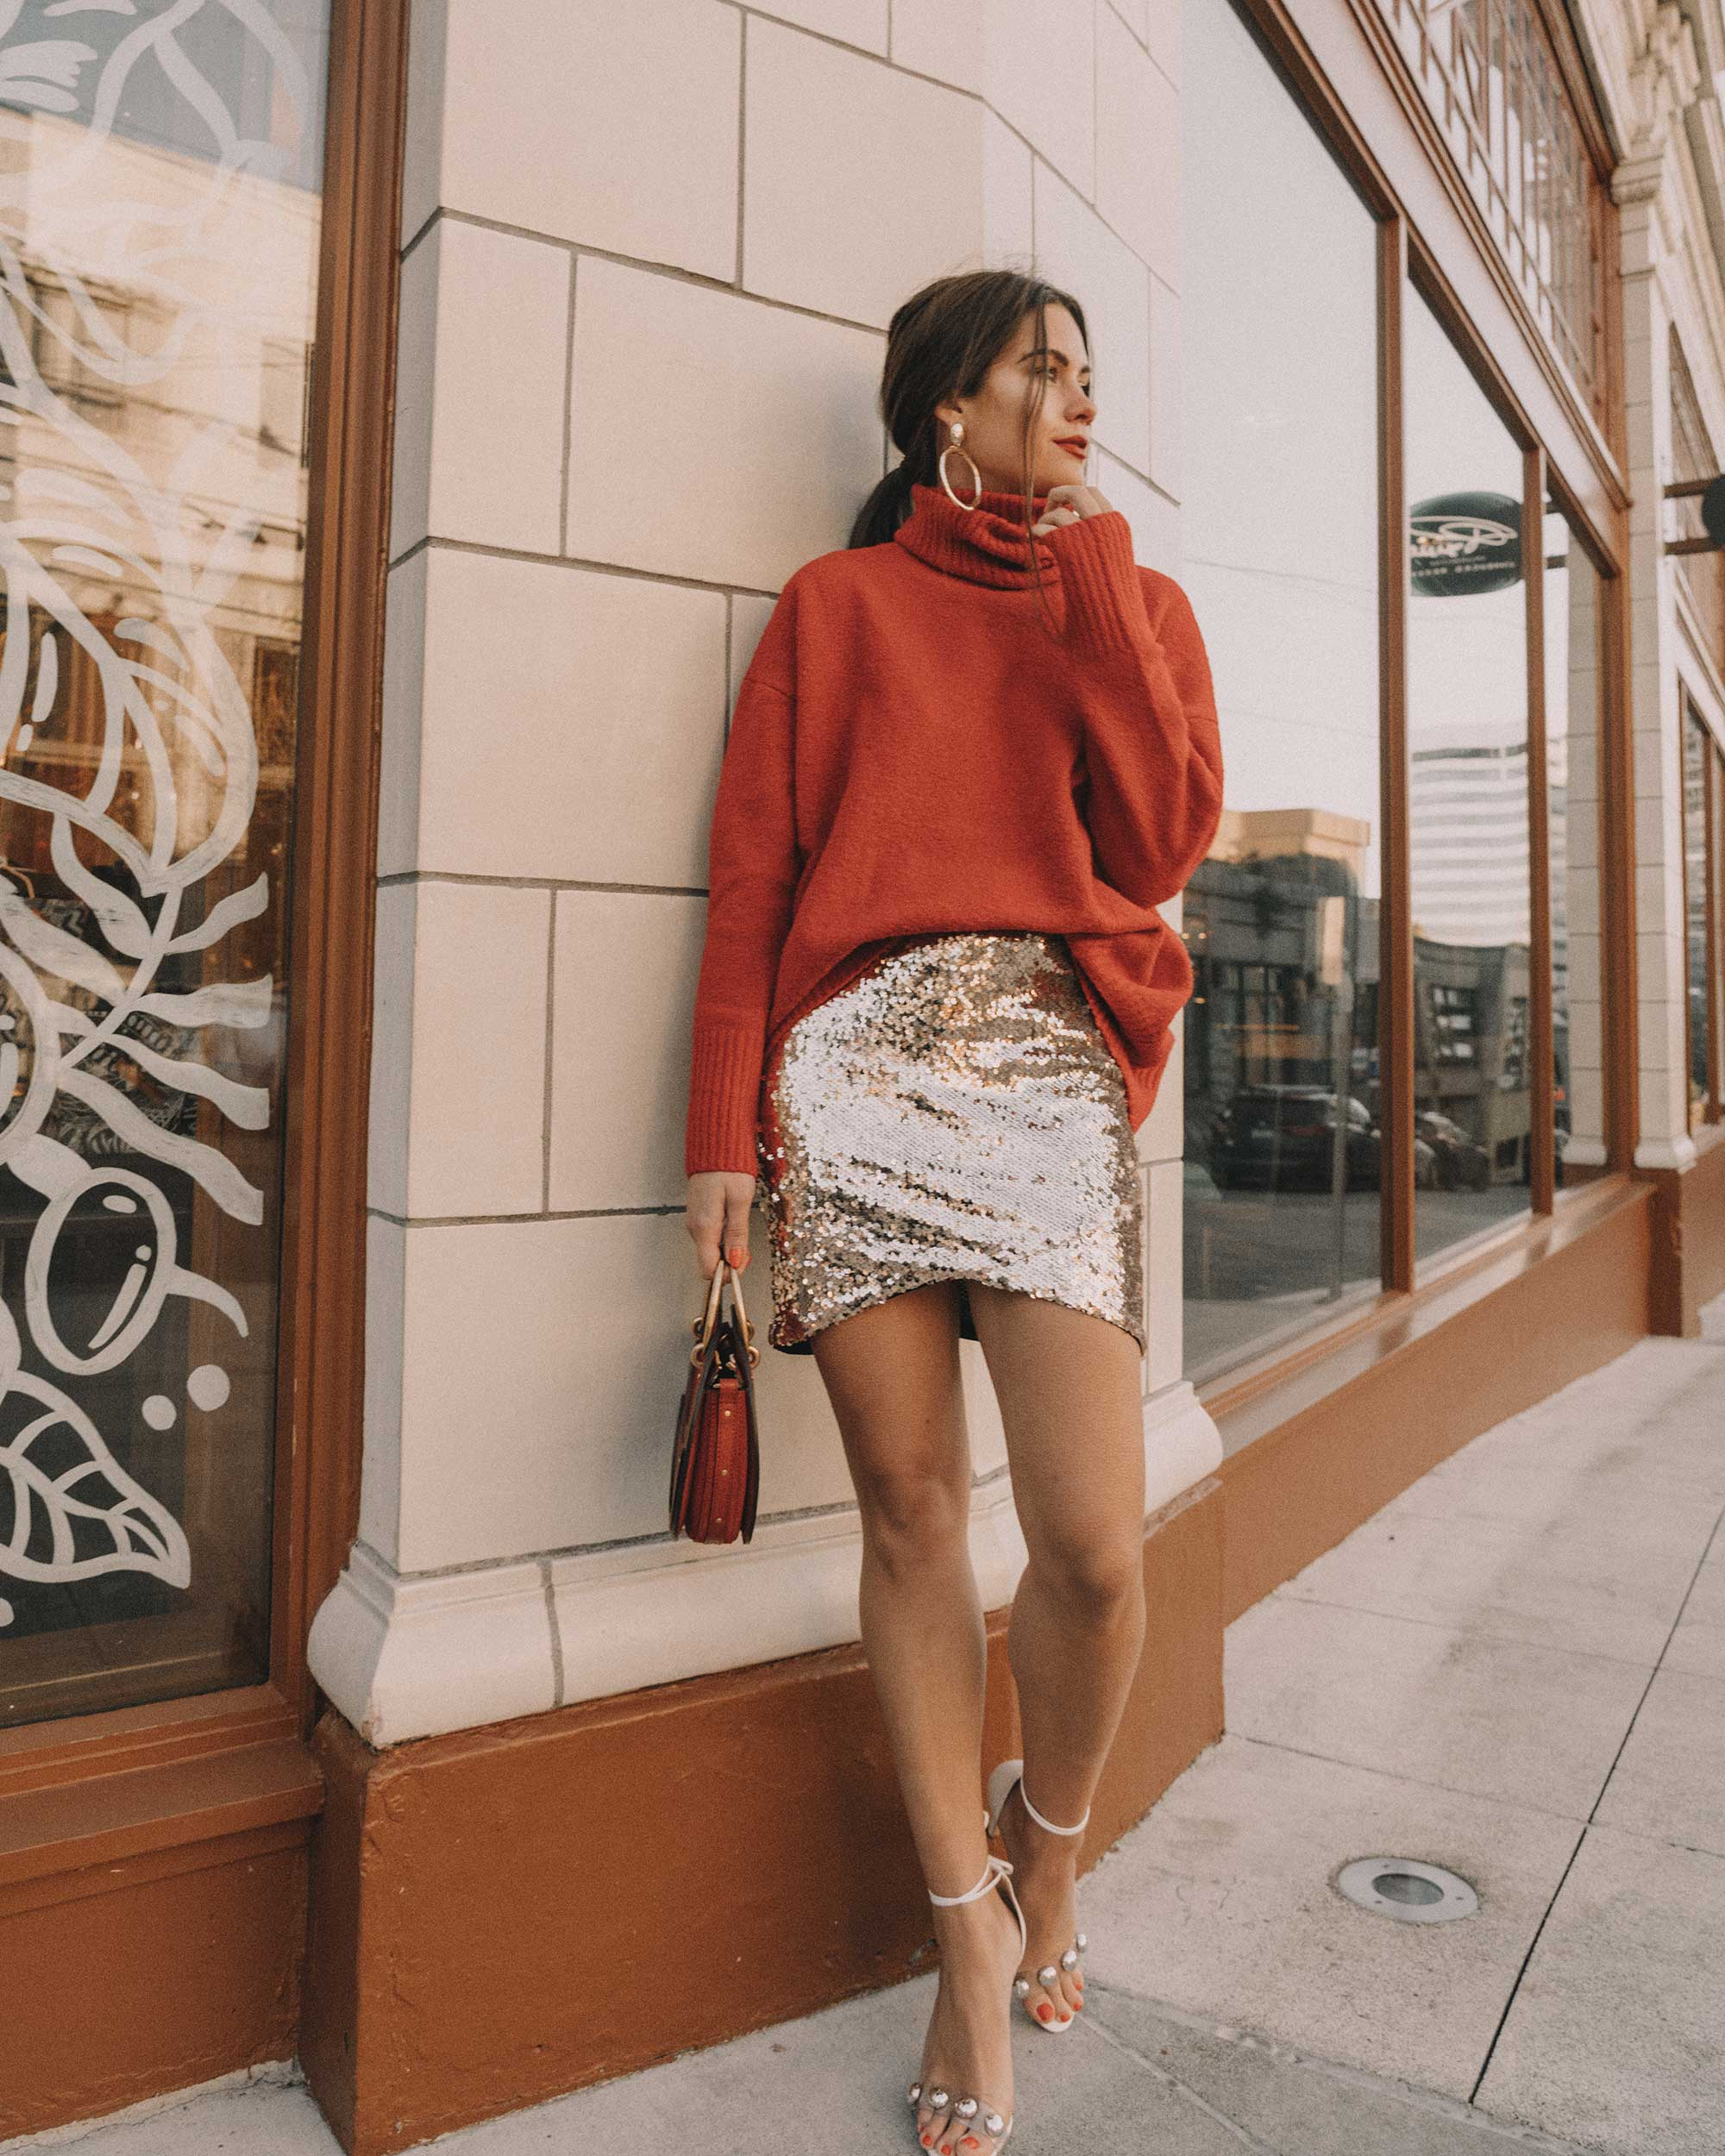 Red turtleneck sweater with an oversized collar and sequin skirt cute holiday outfit1.jpg